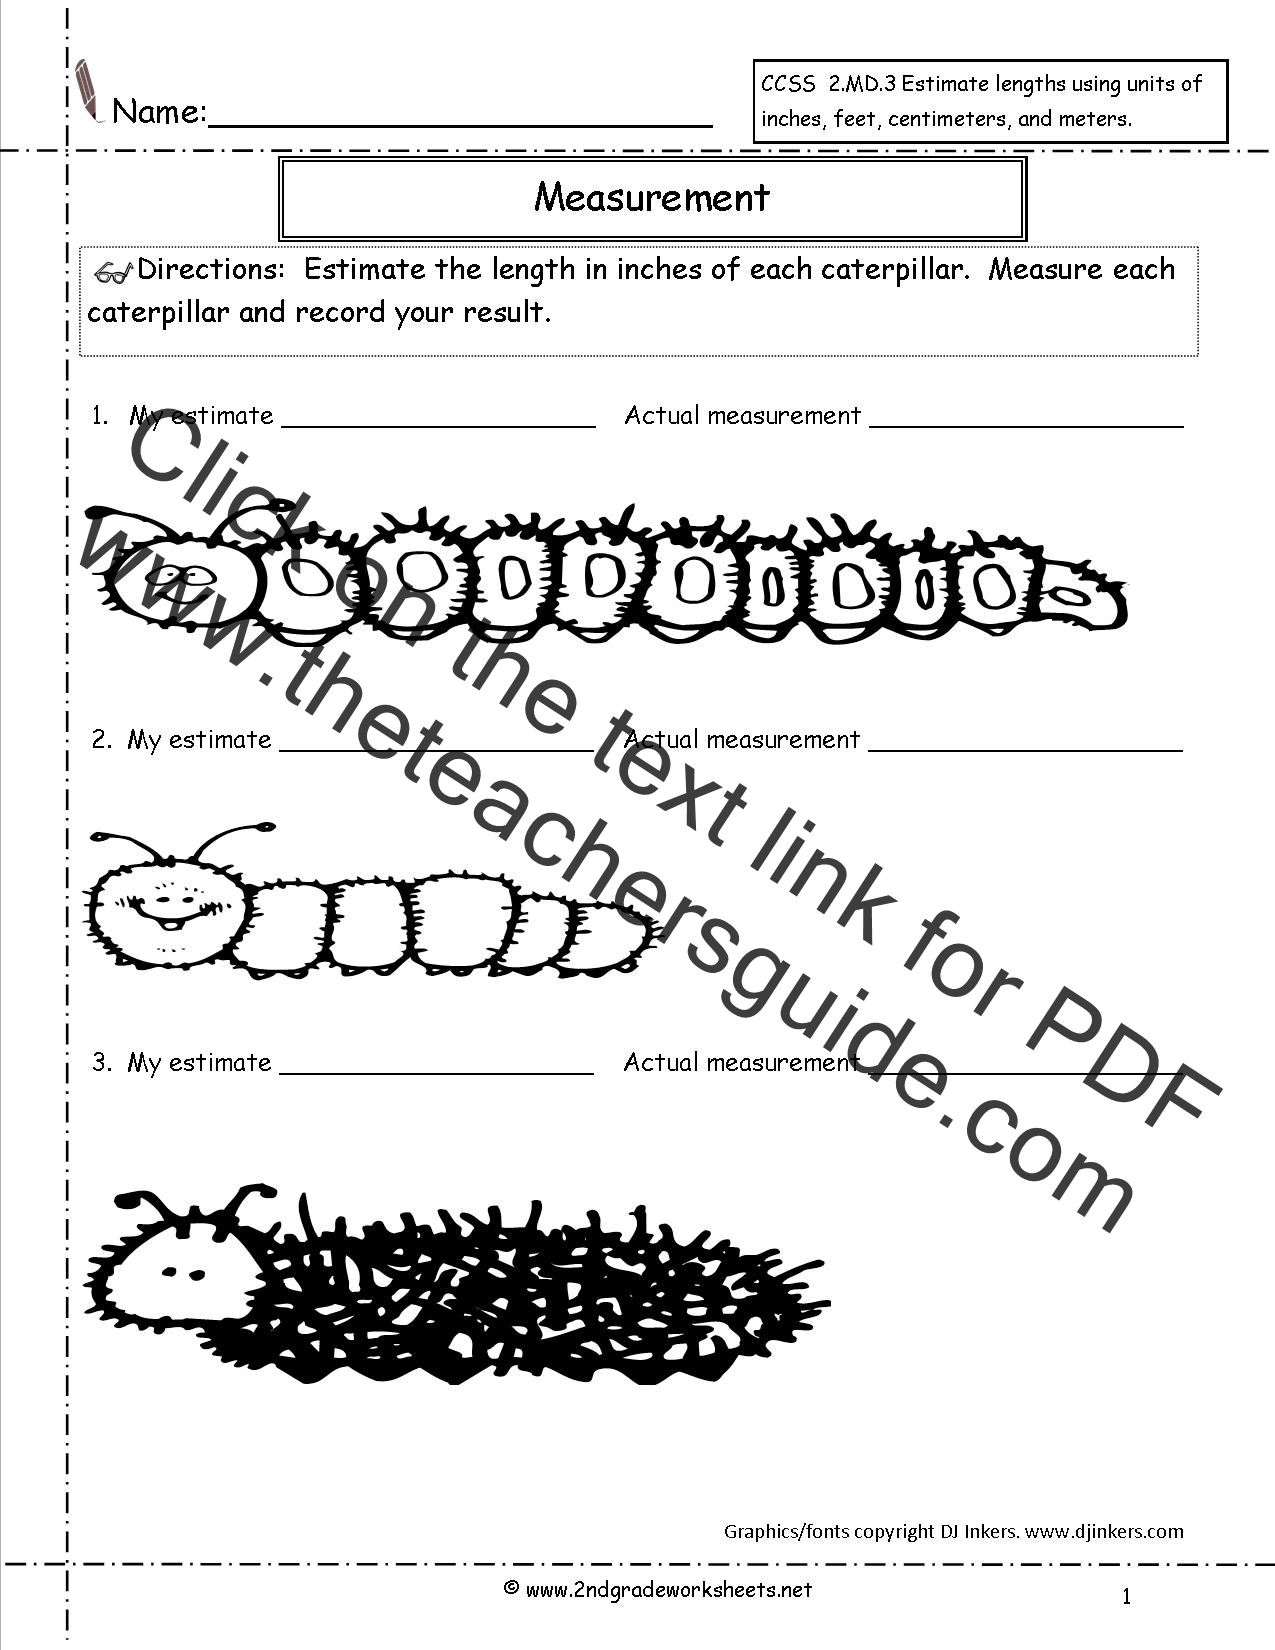 Worksheet Common Core Math Worksheets 2nd Grade 2nd grade math common core state standards worksheets ccss 2 md 3 worksheets